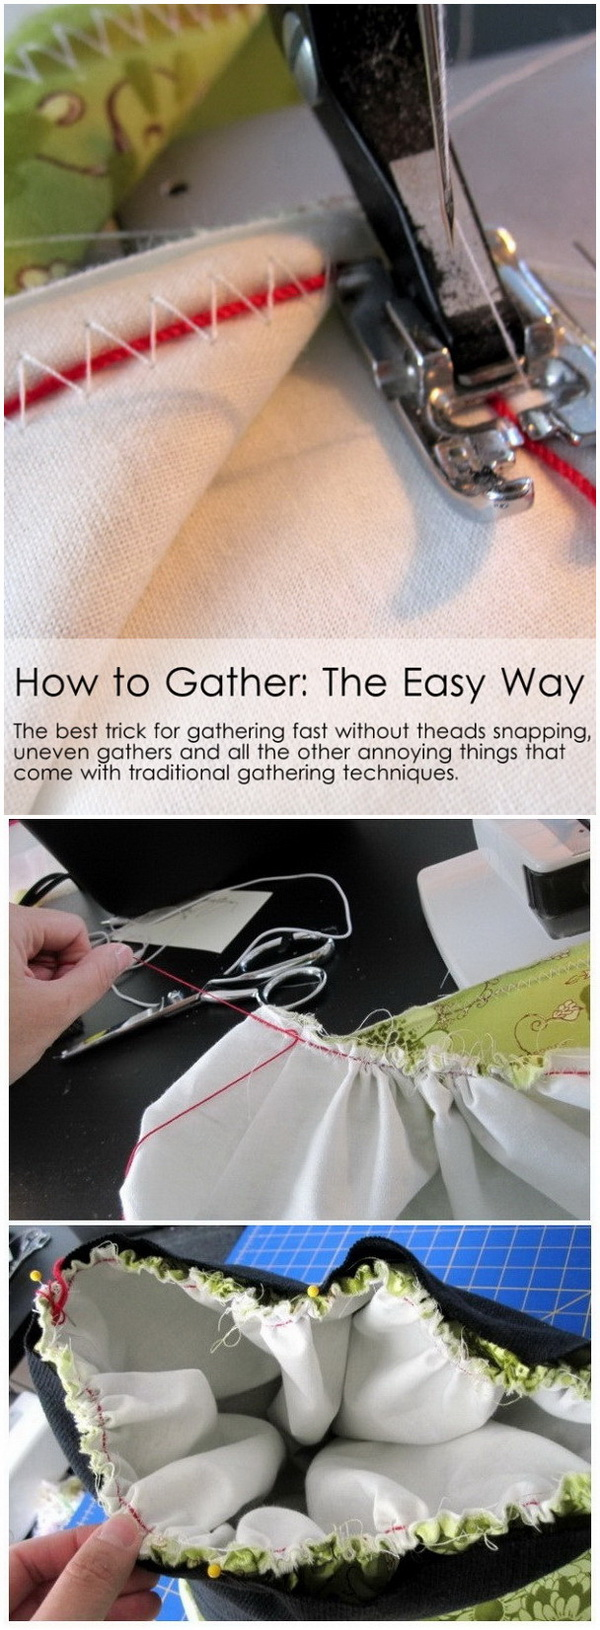 Sewing Hacks: Gather The Easy Way.